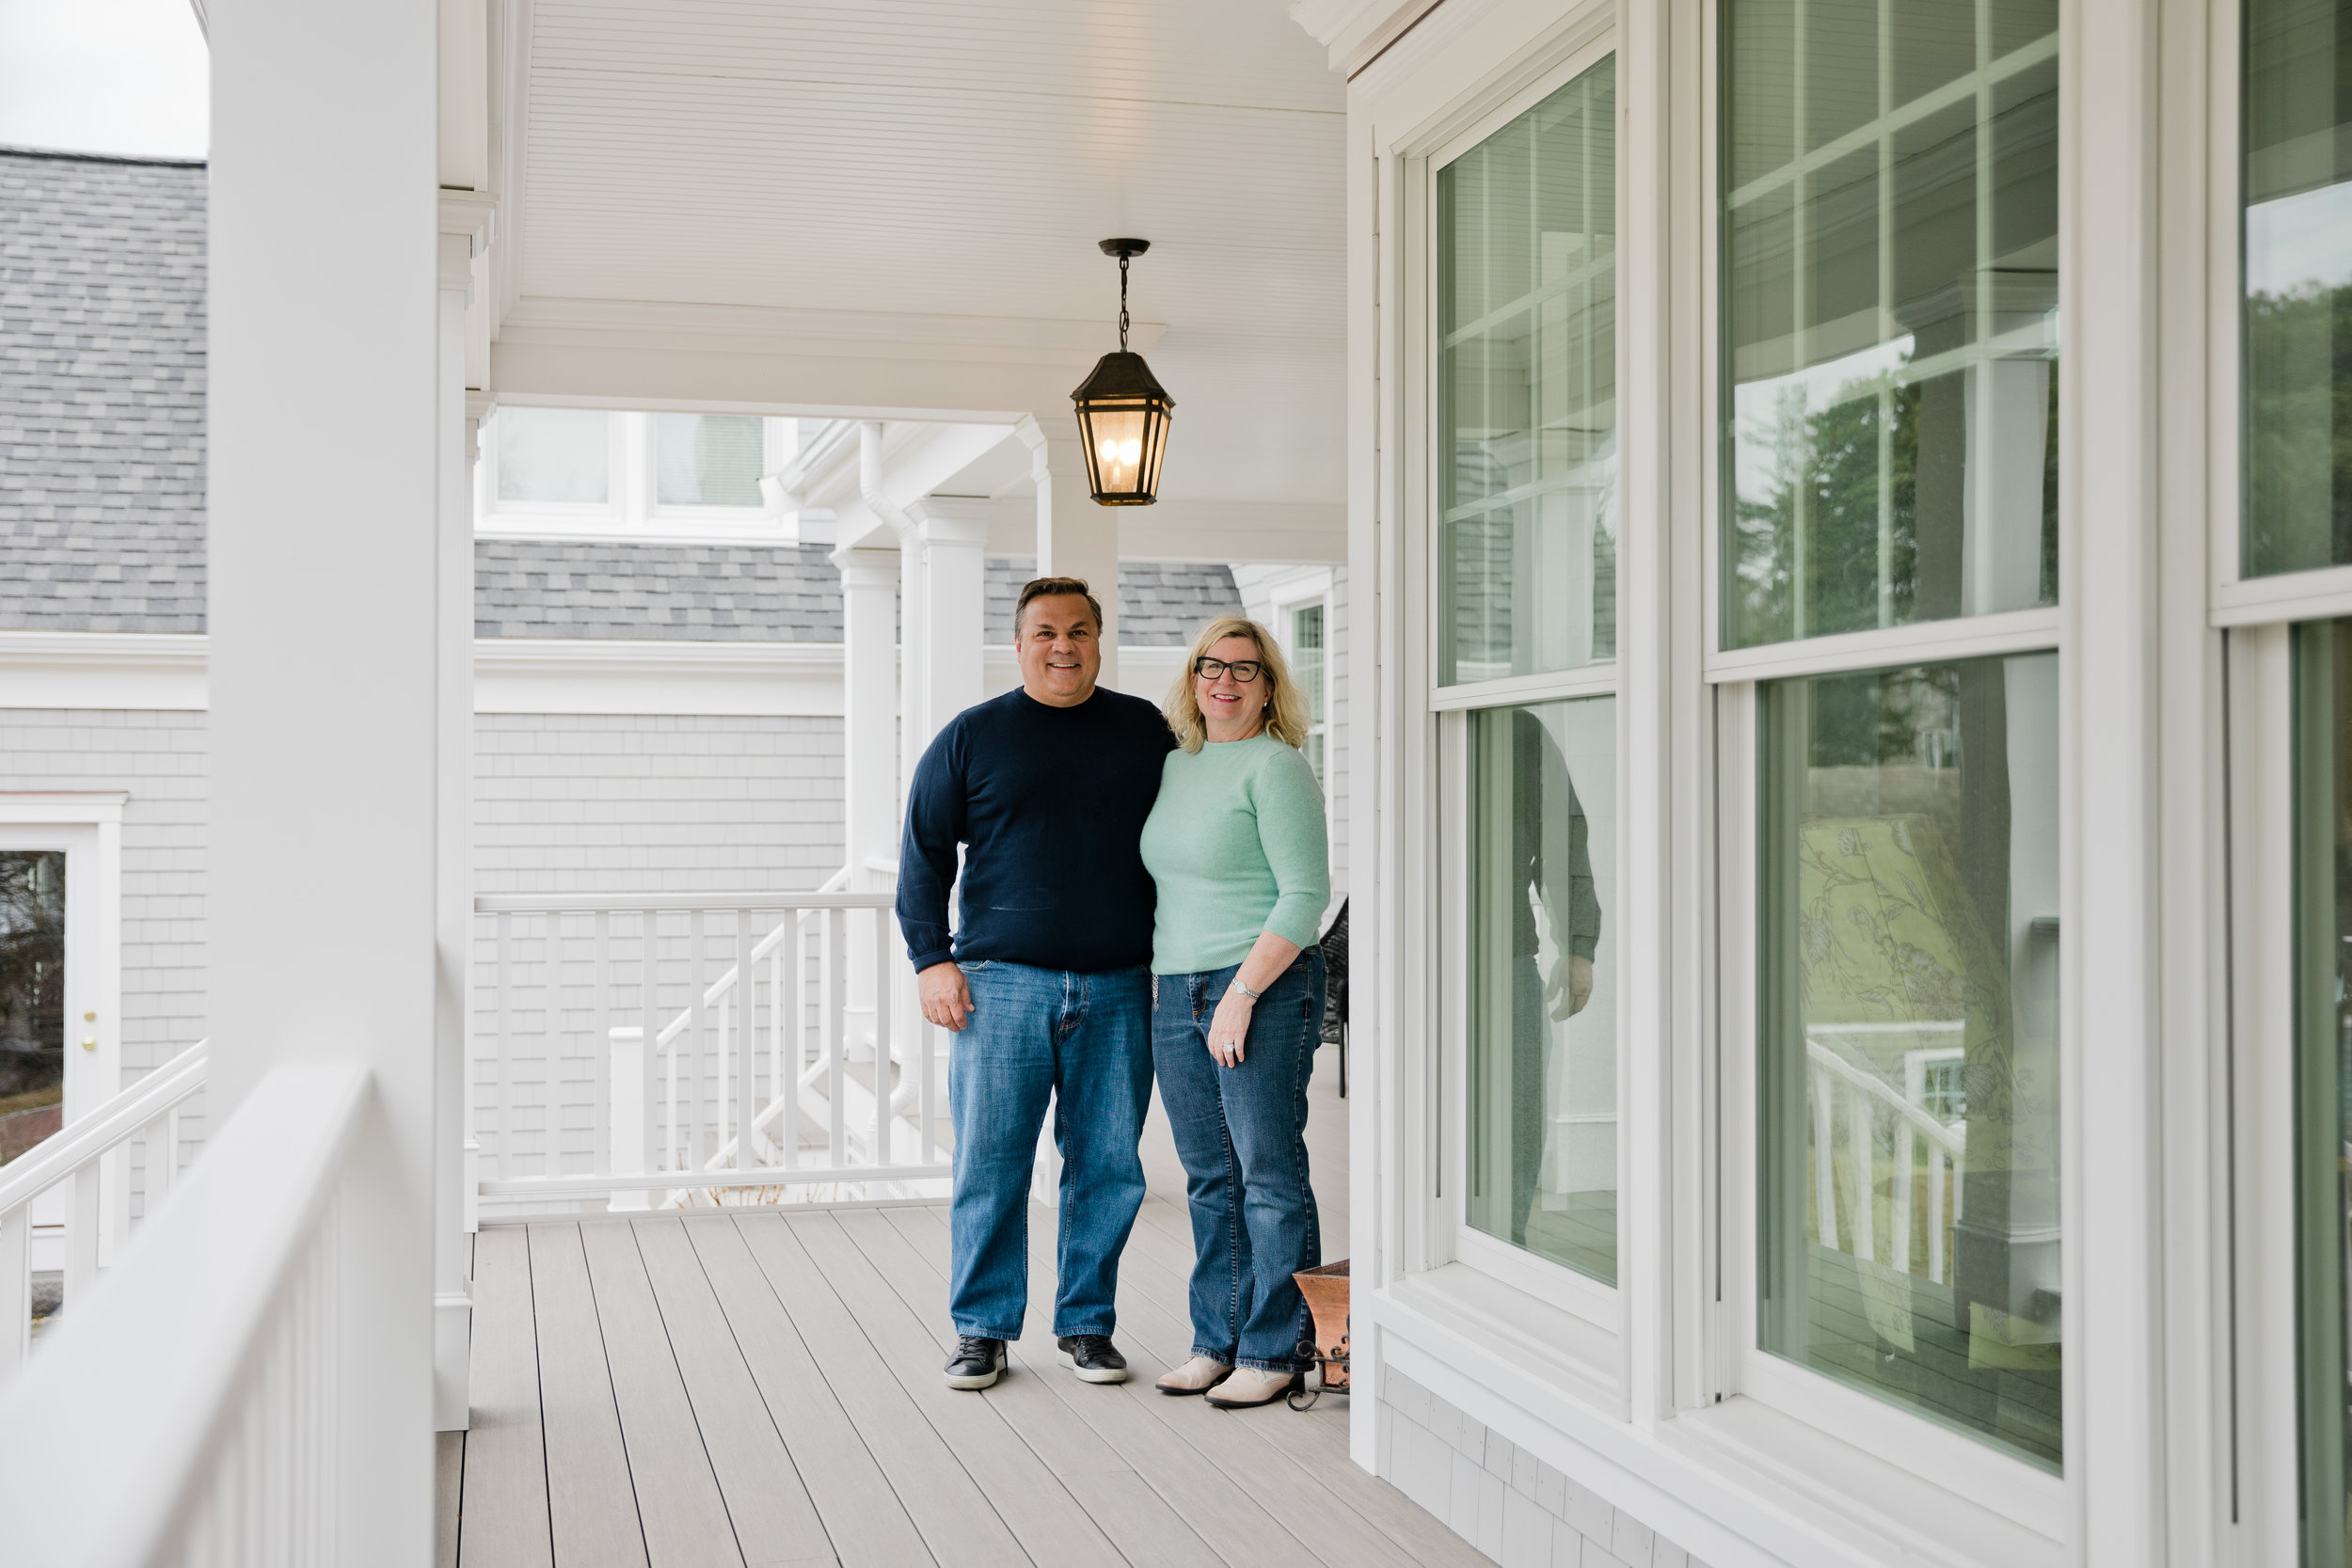 PURE members Mike and Terry Caccavale at their home in Chatham, Massachusetts.